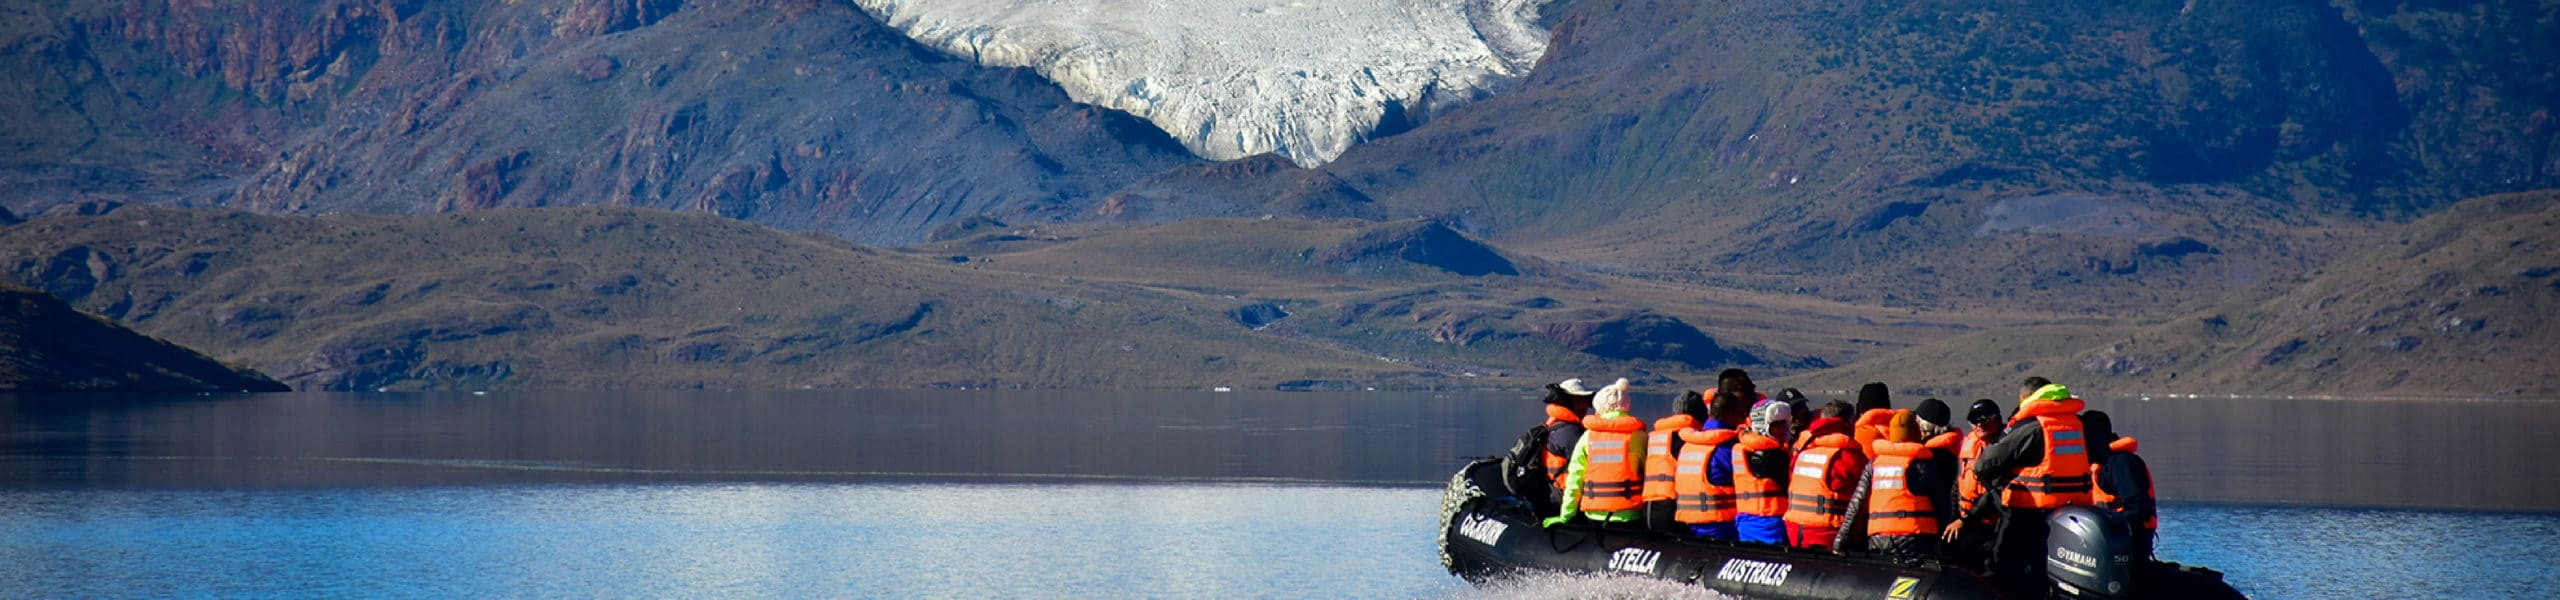 Australis Cruise Expedition in Patagonia, by RipioTurismo DMC for Chile and Argentina